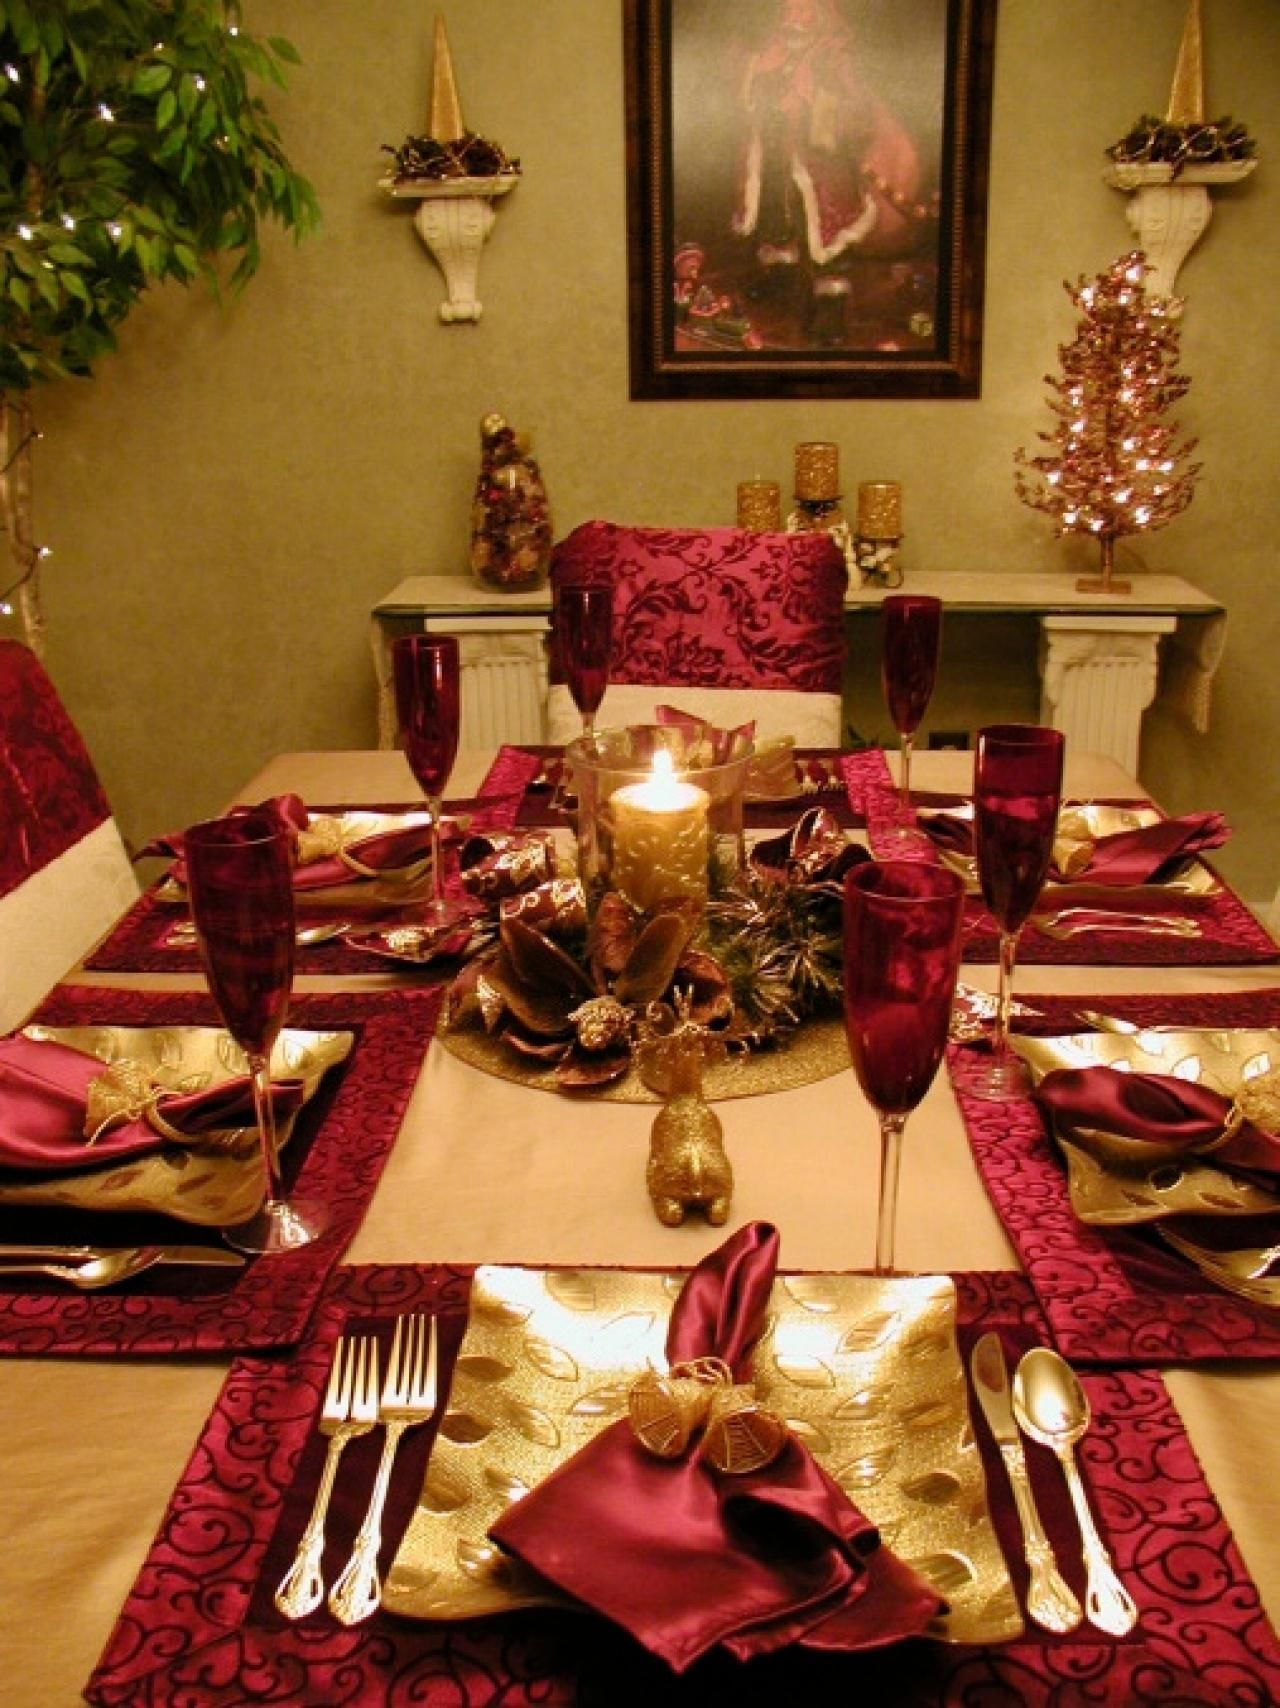 Red and gold christmas decoration ideas - Decoration Christmas Table Decorations Entertaining Ideas